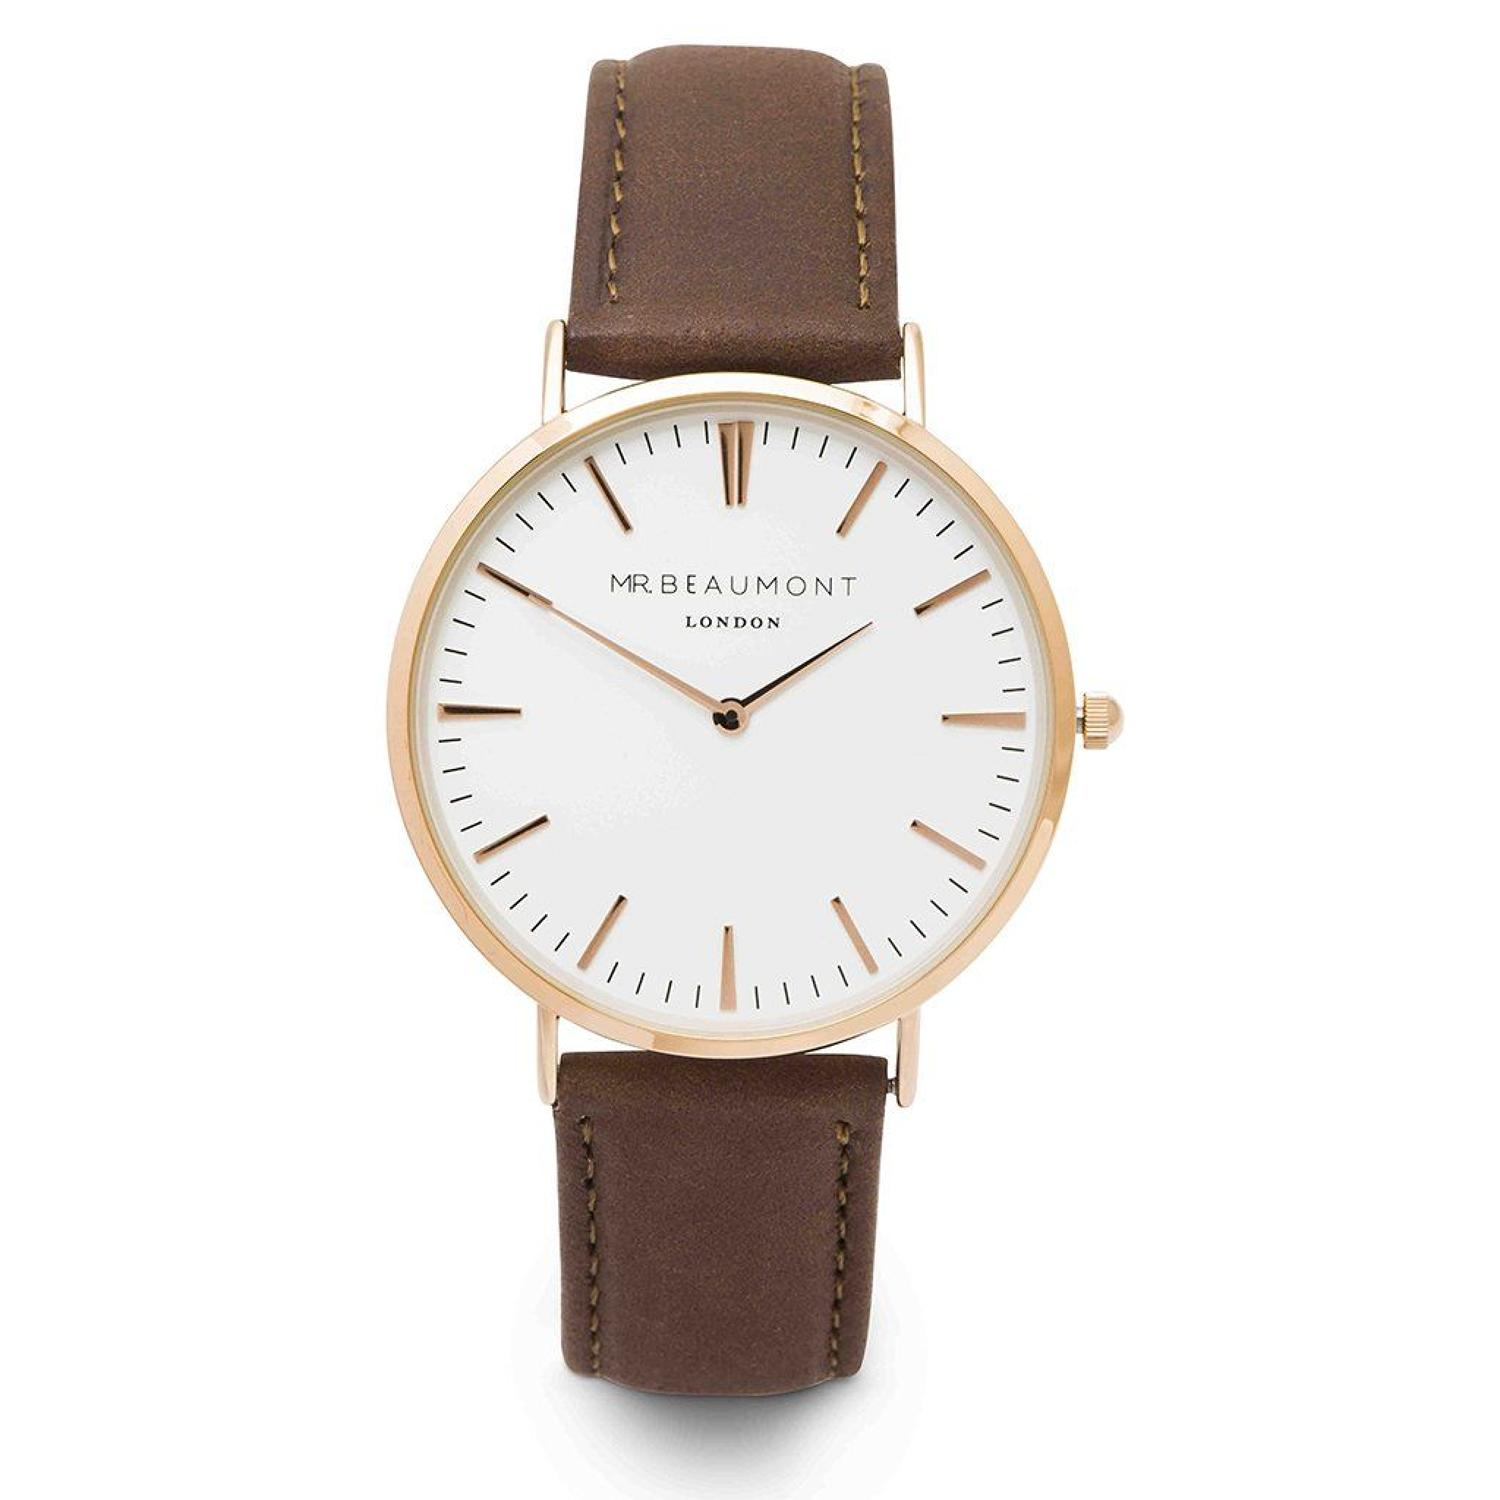 Mr Beaumont - Brown leather/rose gold face